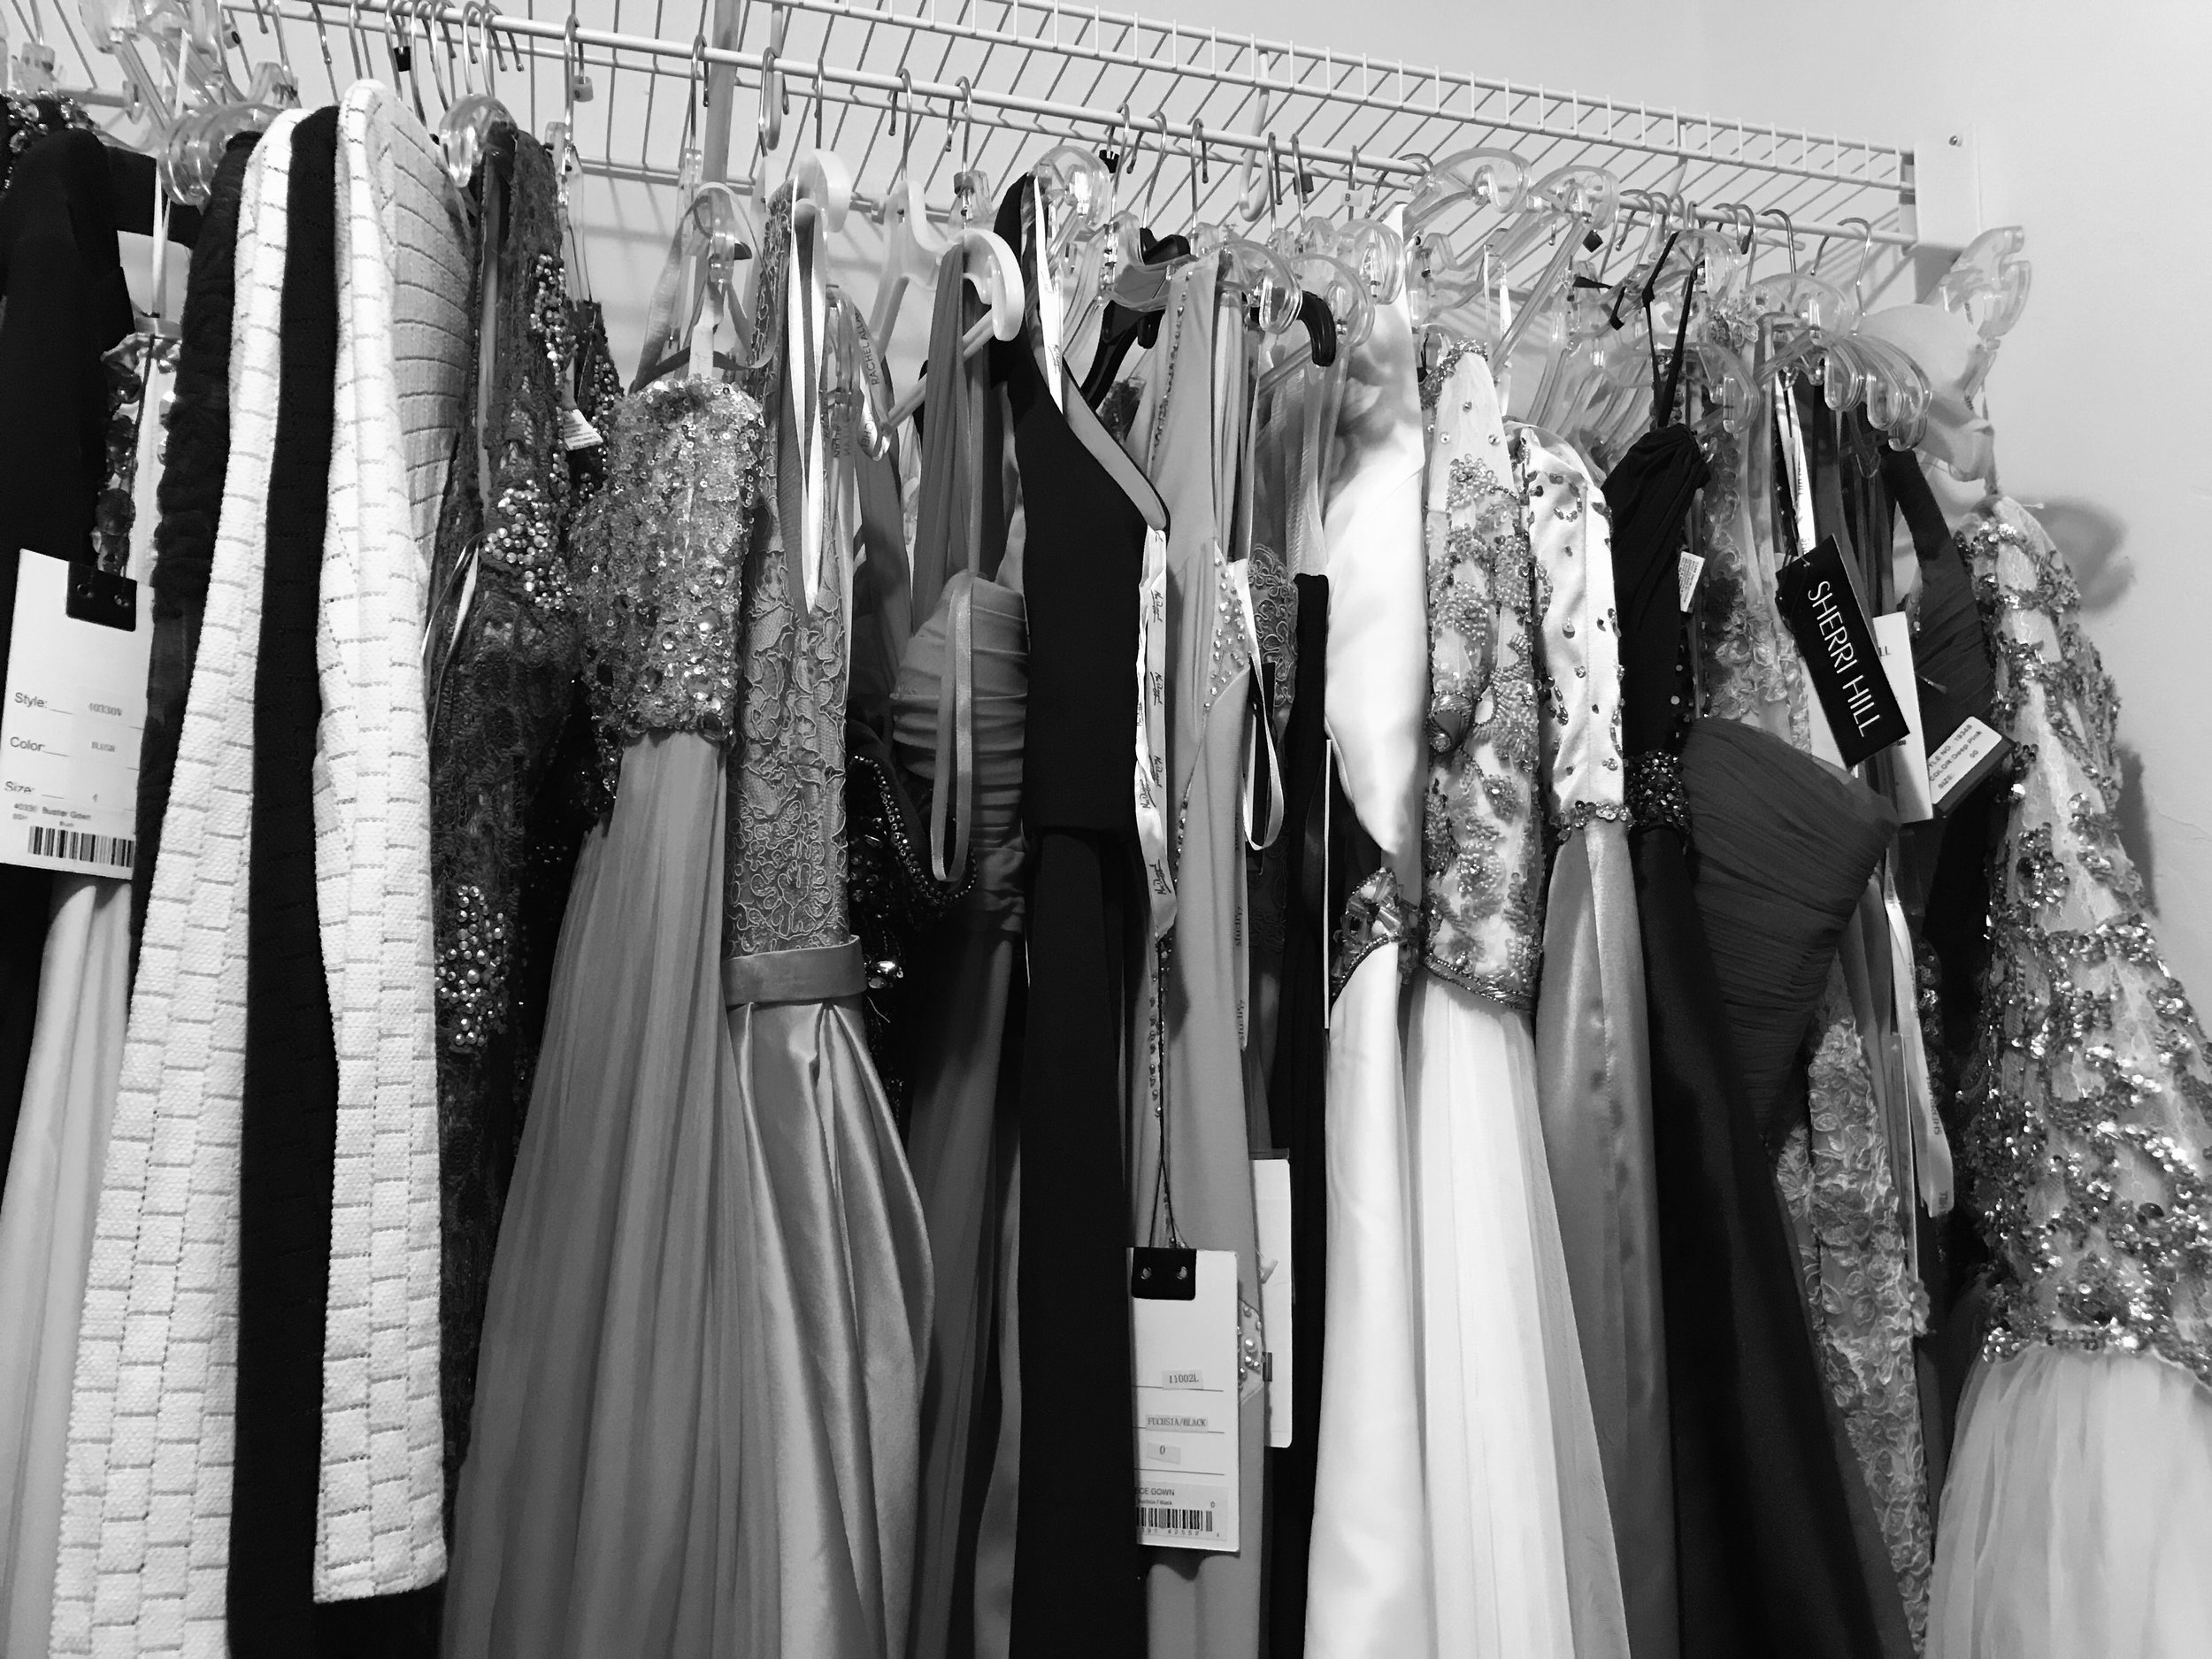 Ready to donate your dresses? - We are accepting dresses via mail! Email us for Philly Phairytale's shipping address.If you are in the Philadelphia area pick-ups can be scheduled for bulk donations of 10 or more dresses.